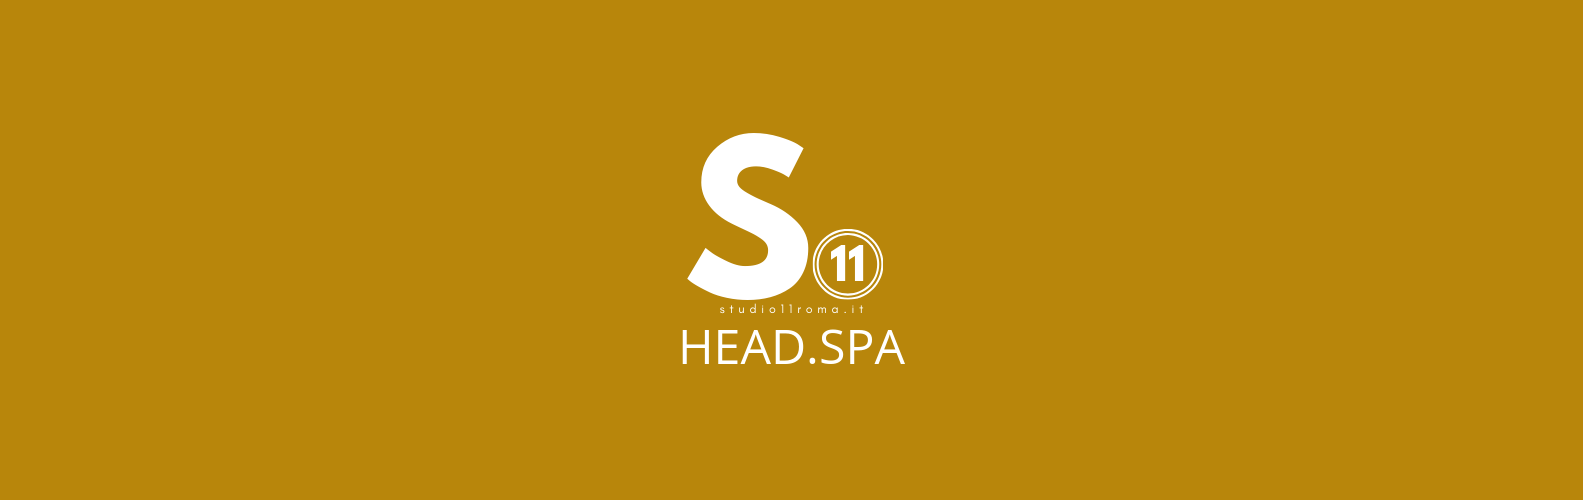 Oway Head.Spa